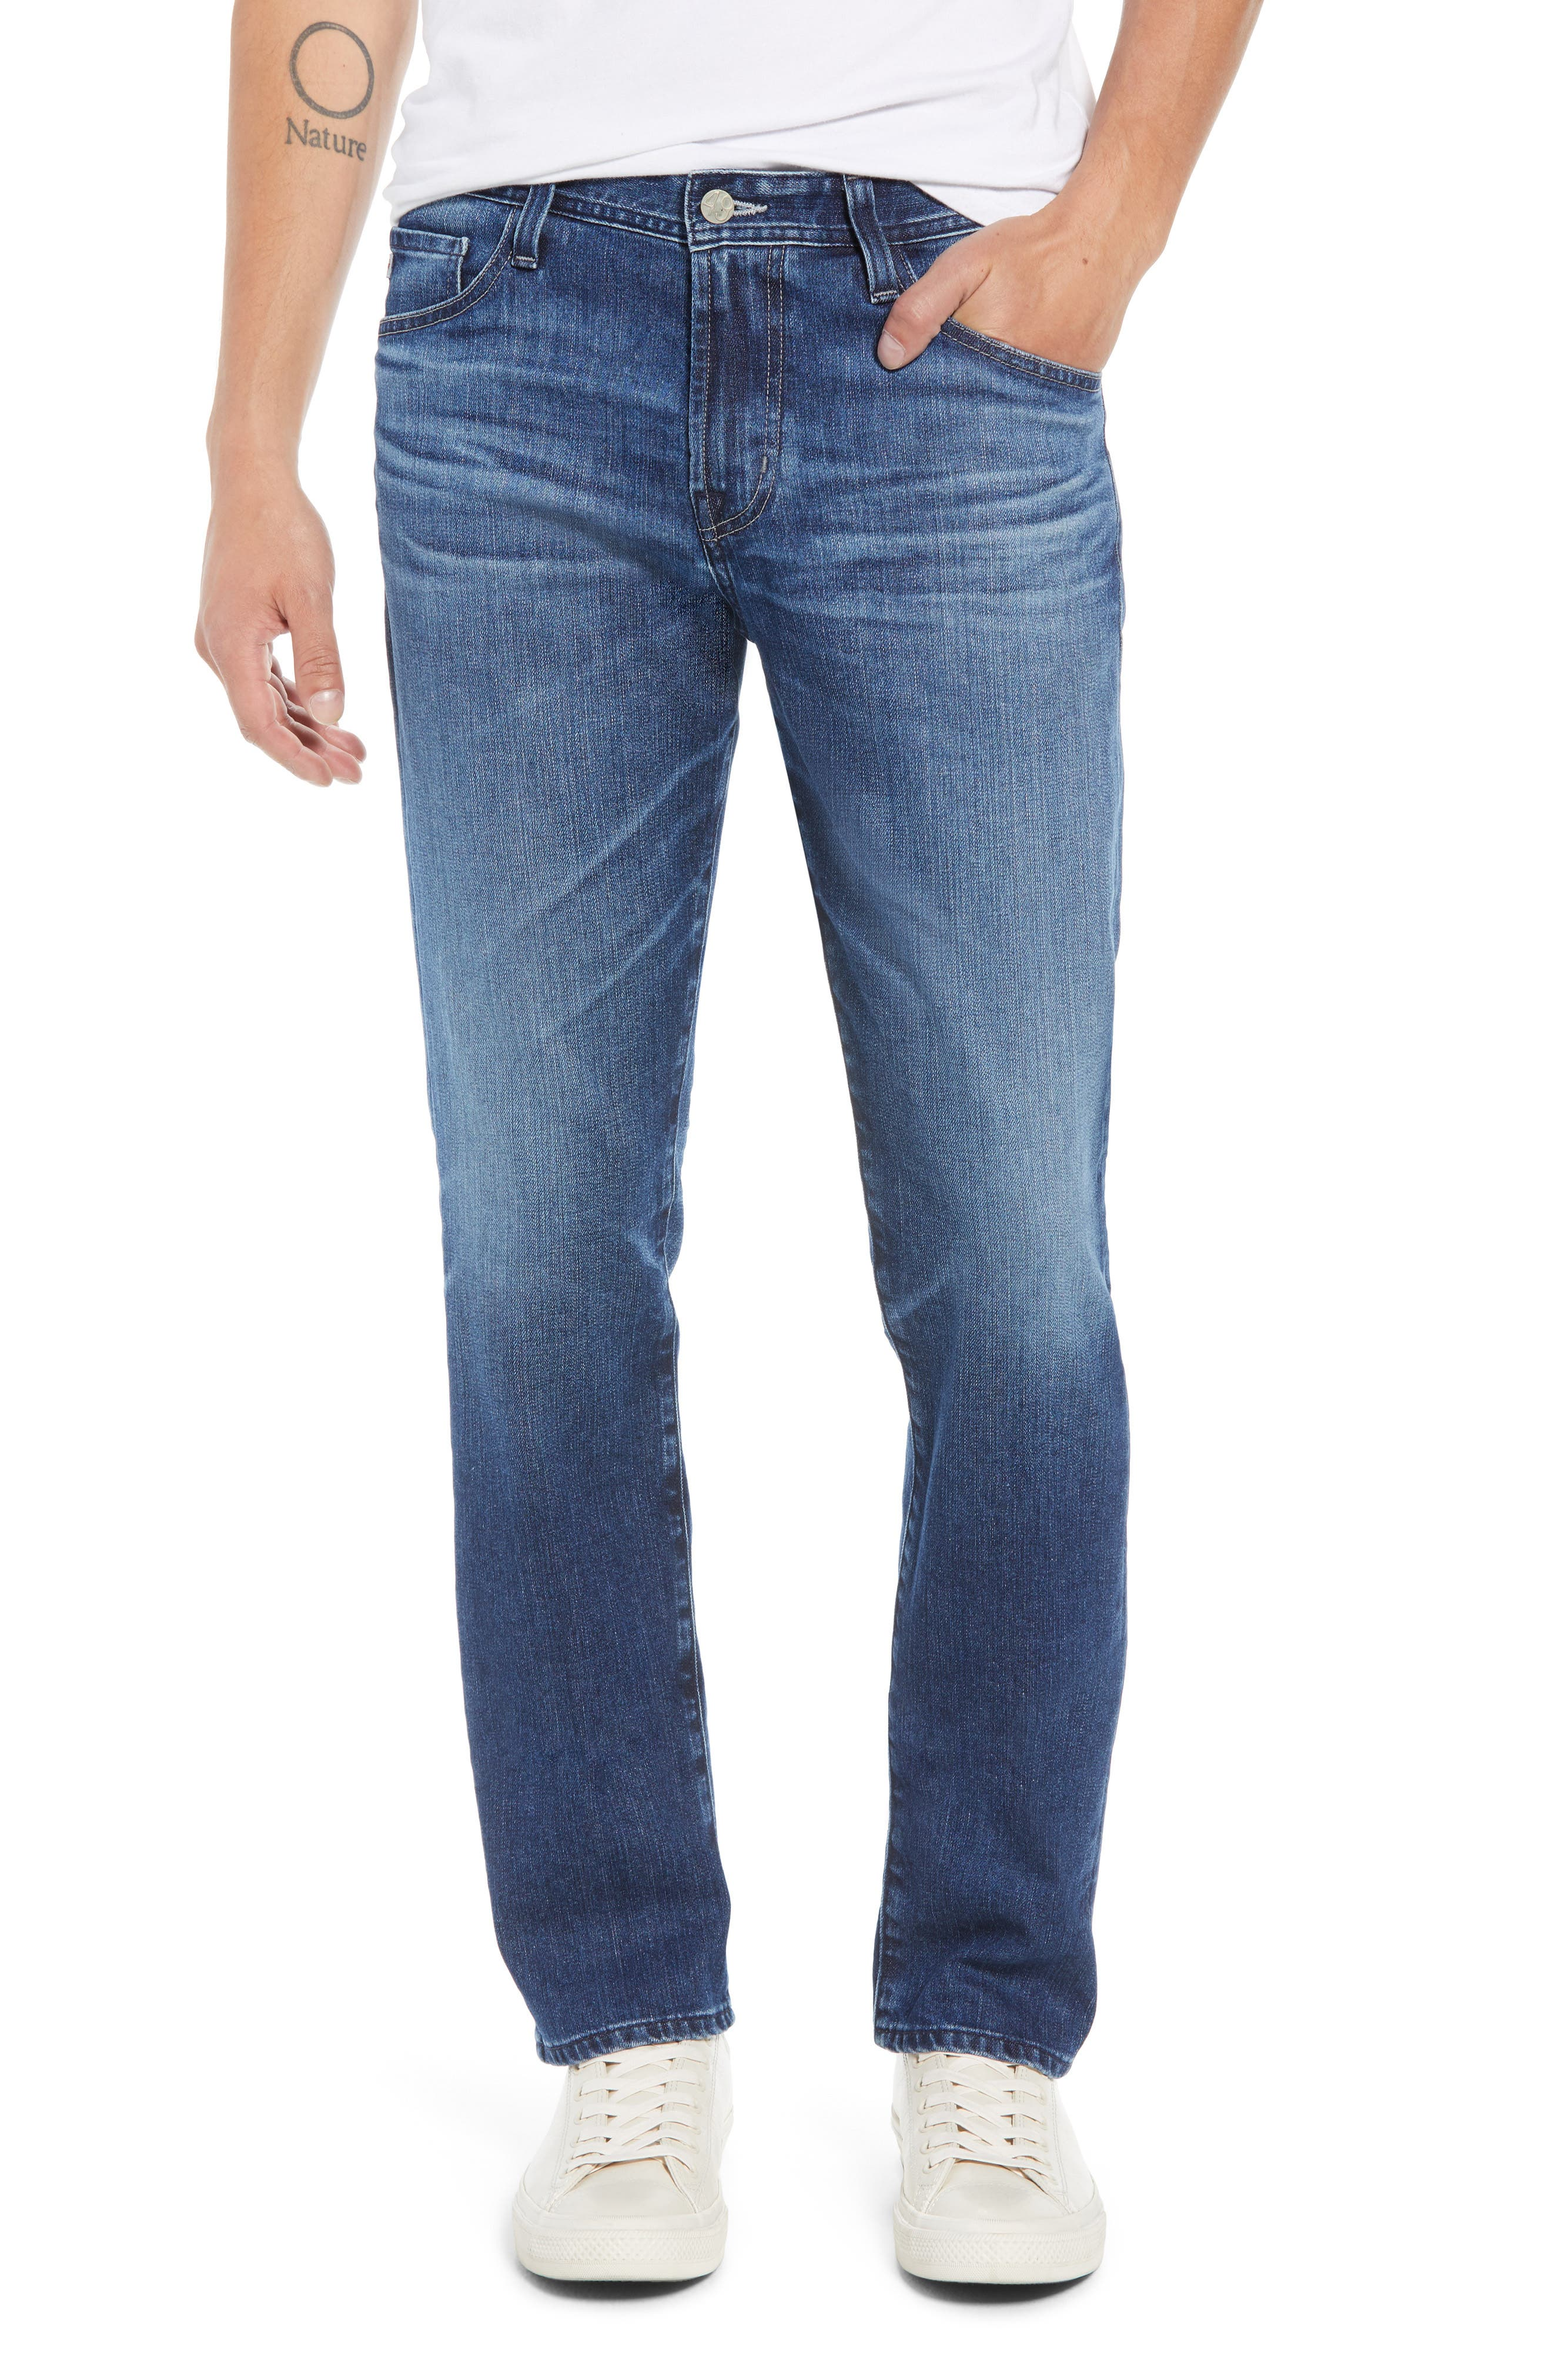 Everett Slim Straight Leg Jeans,                         Main,                         color, 9 YEARS SEQUENCE